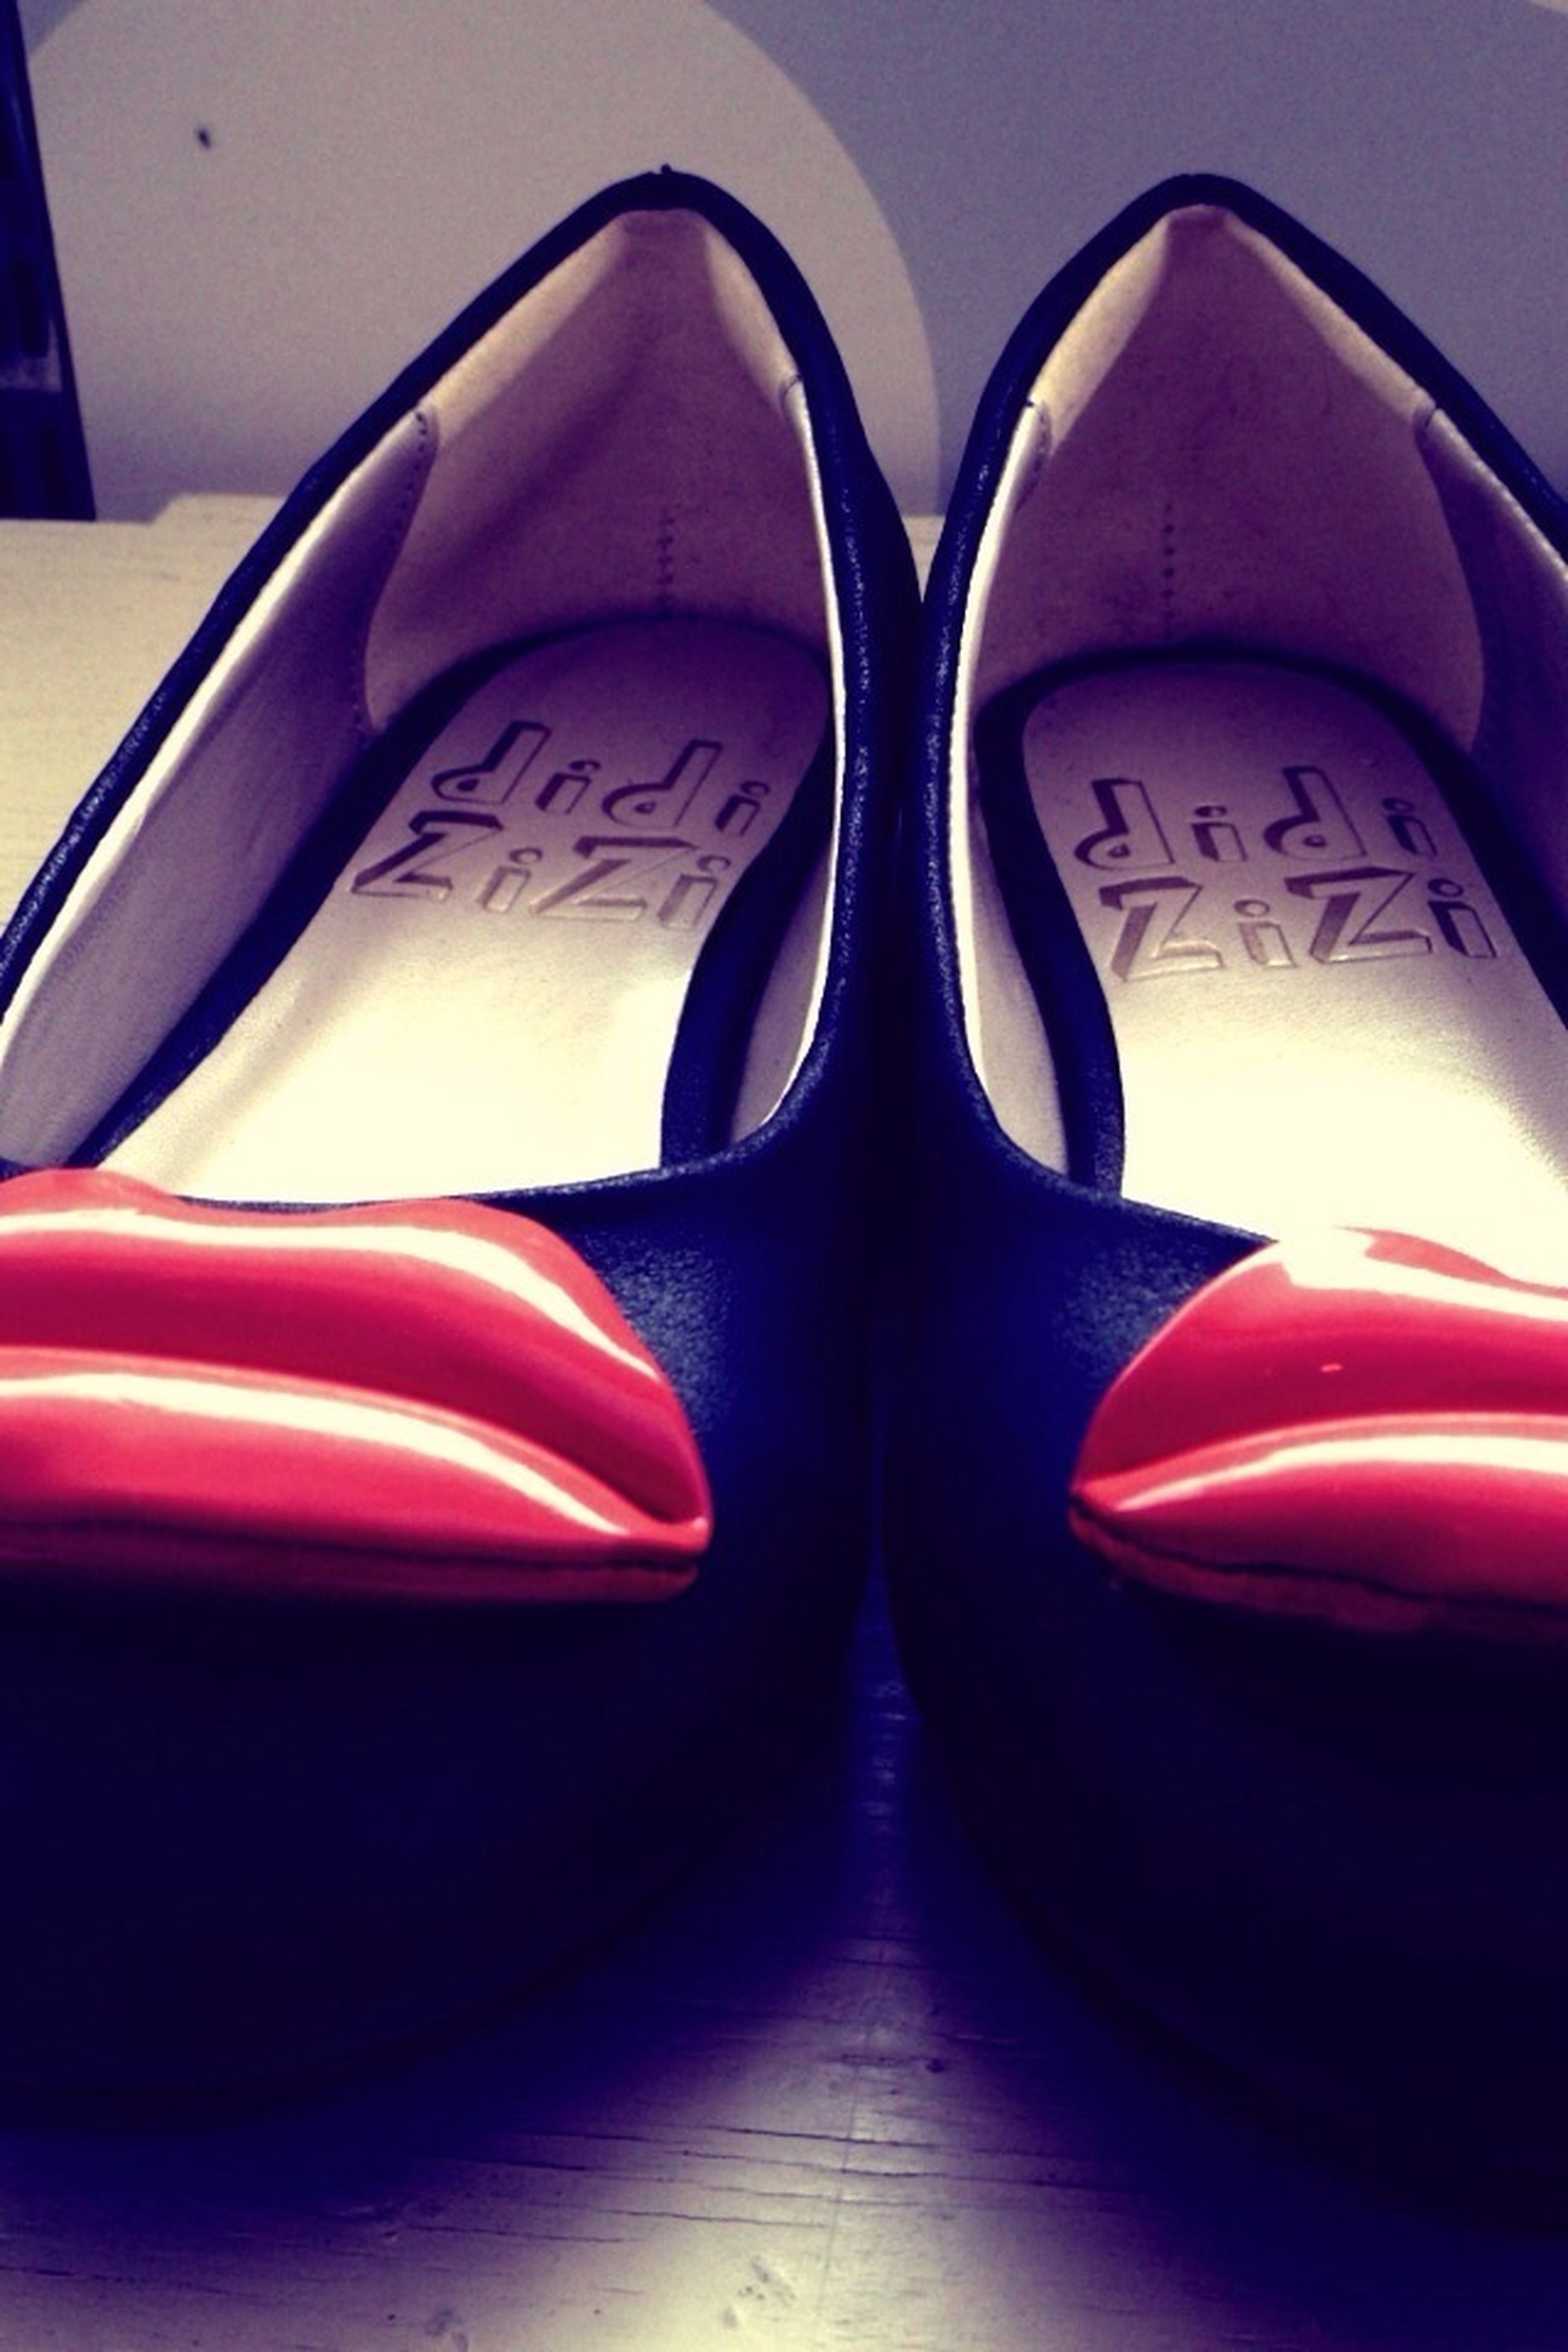 indoors, close-up, red, shoe, still life, empty, no people, reflection, absence, pair, car, part of, high angle view, detail, black color, day, footwear, seat, focus on foreground, fashion